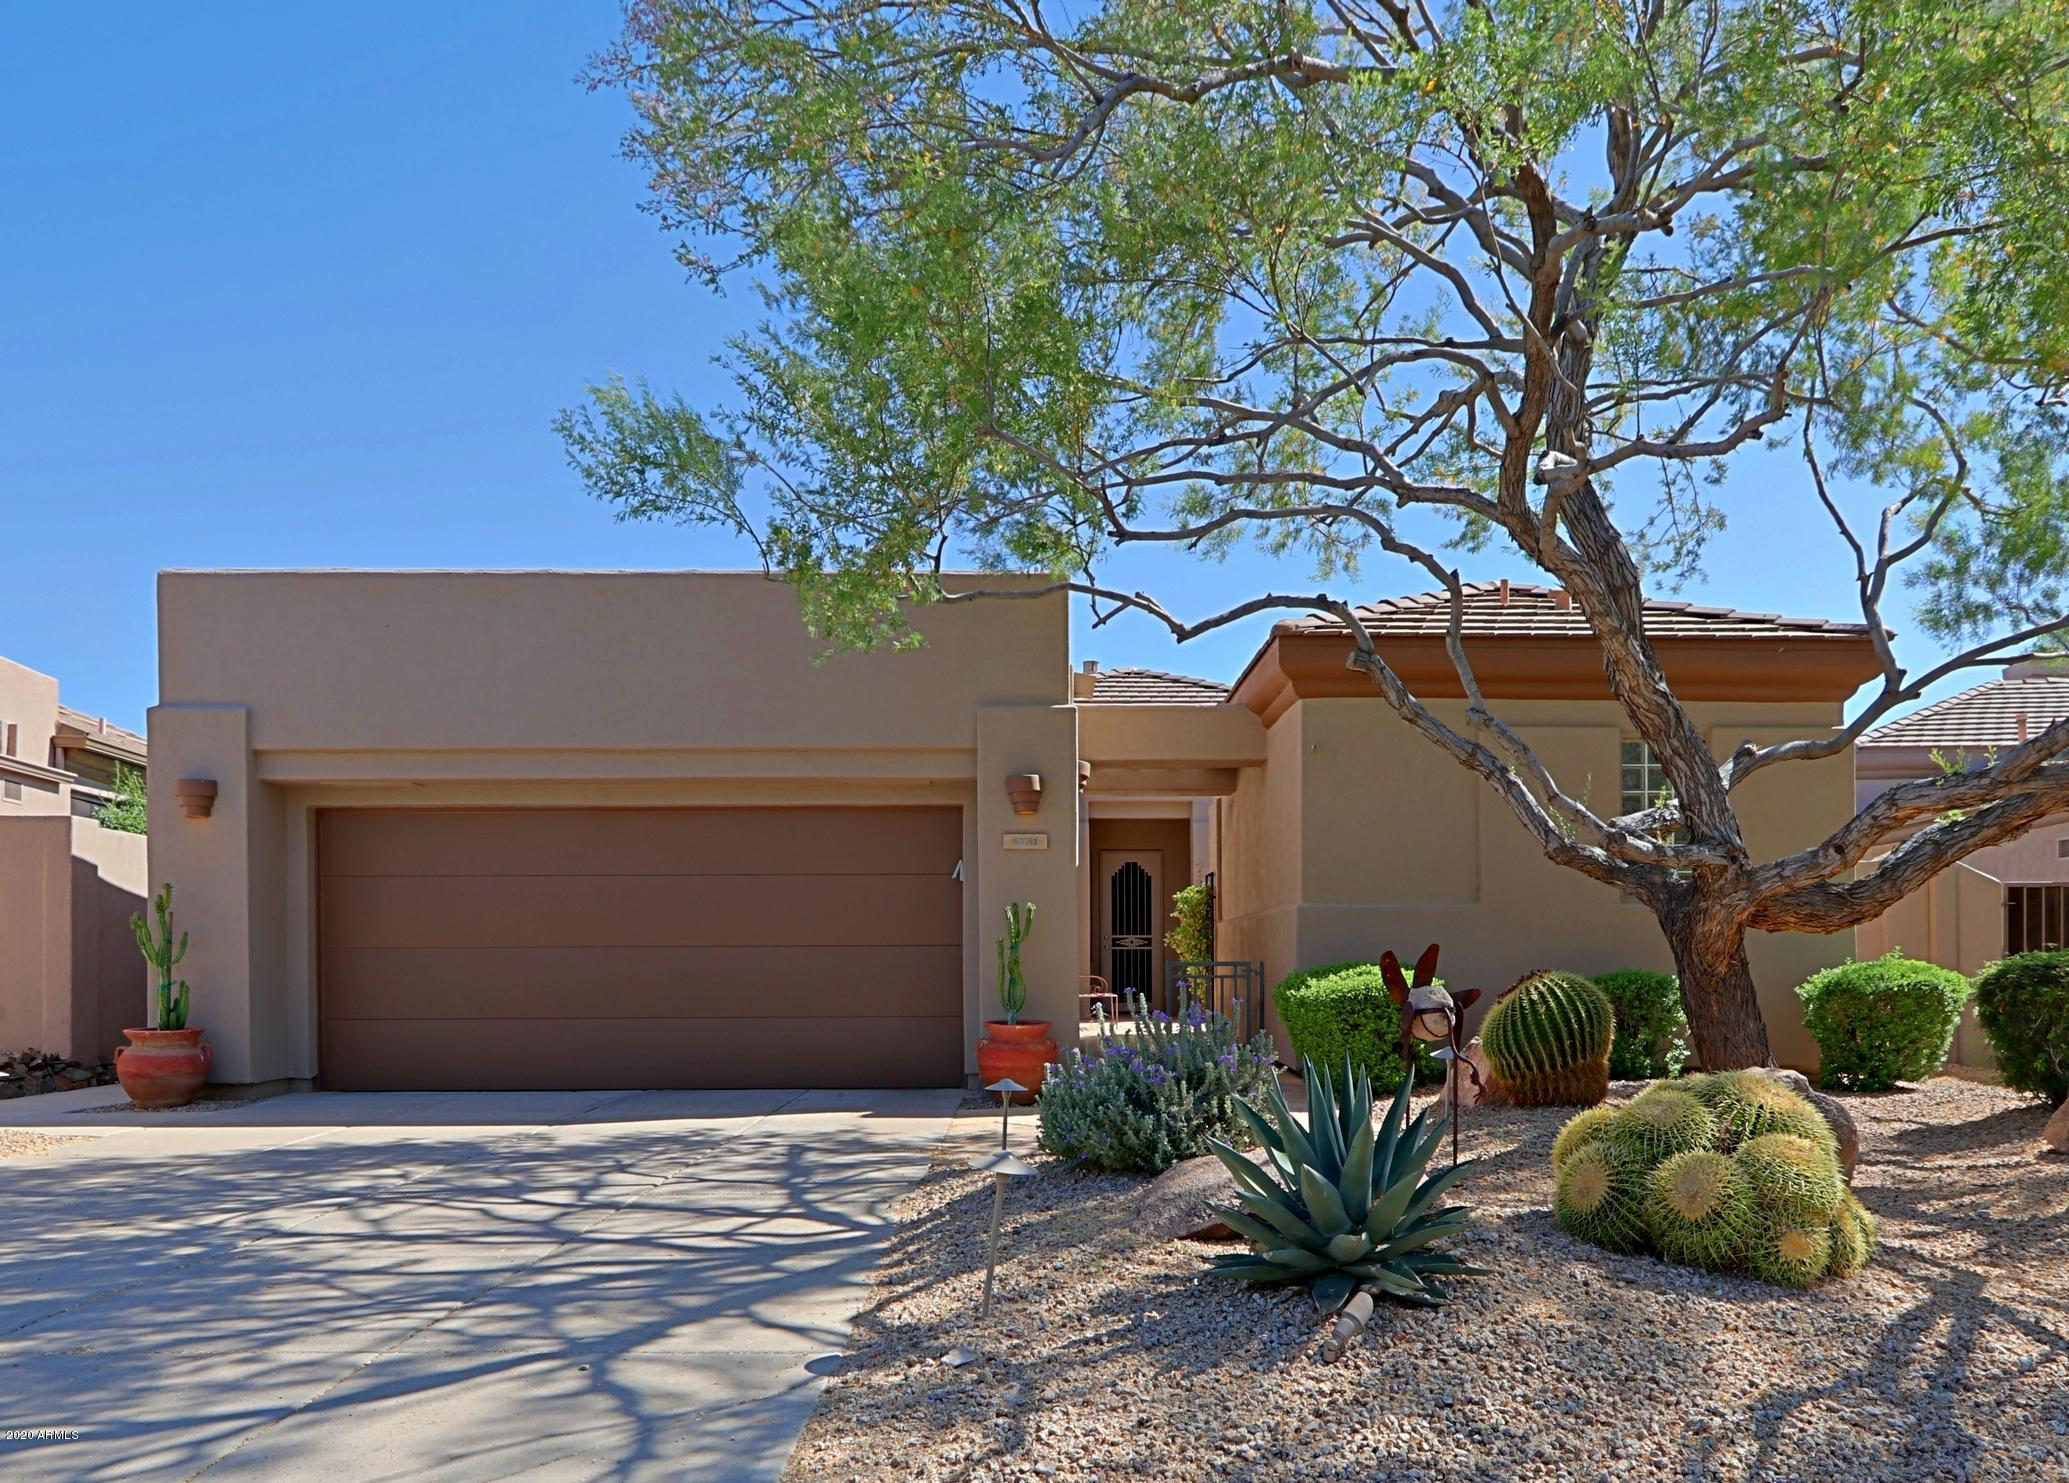 Photo of 6781 E WHISPERING MESQUITE Trail, Scottsdale, AZ 85266